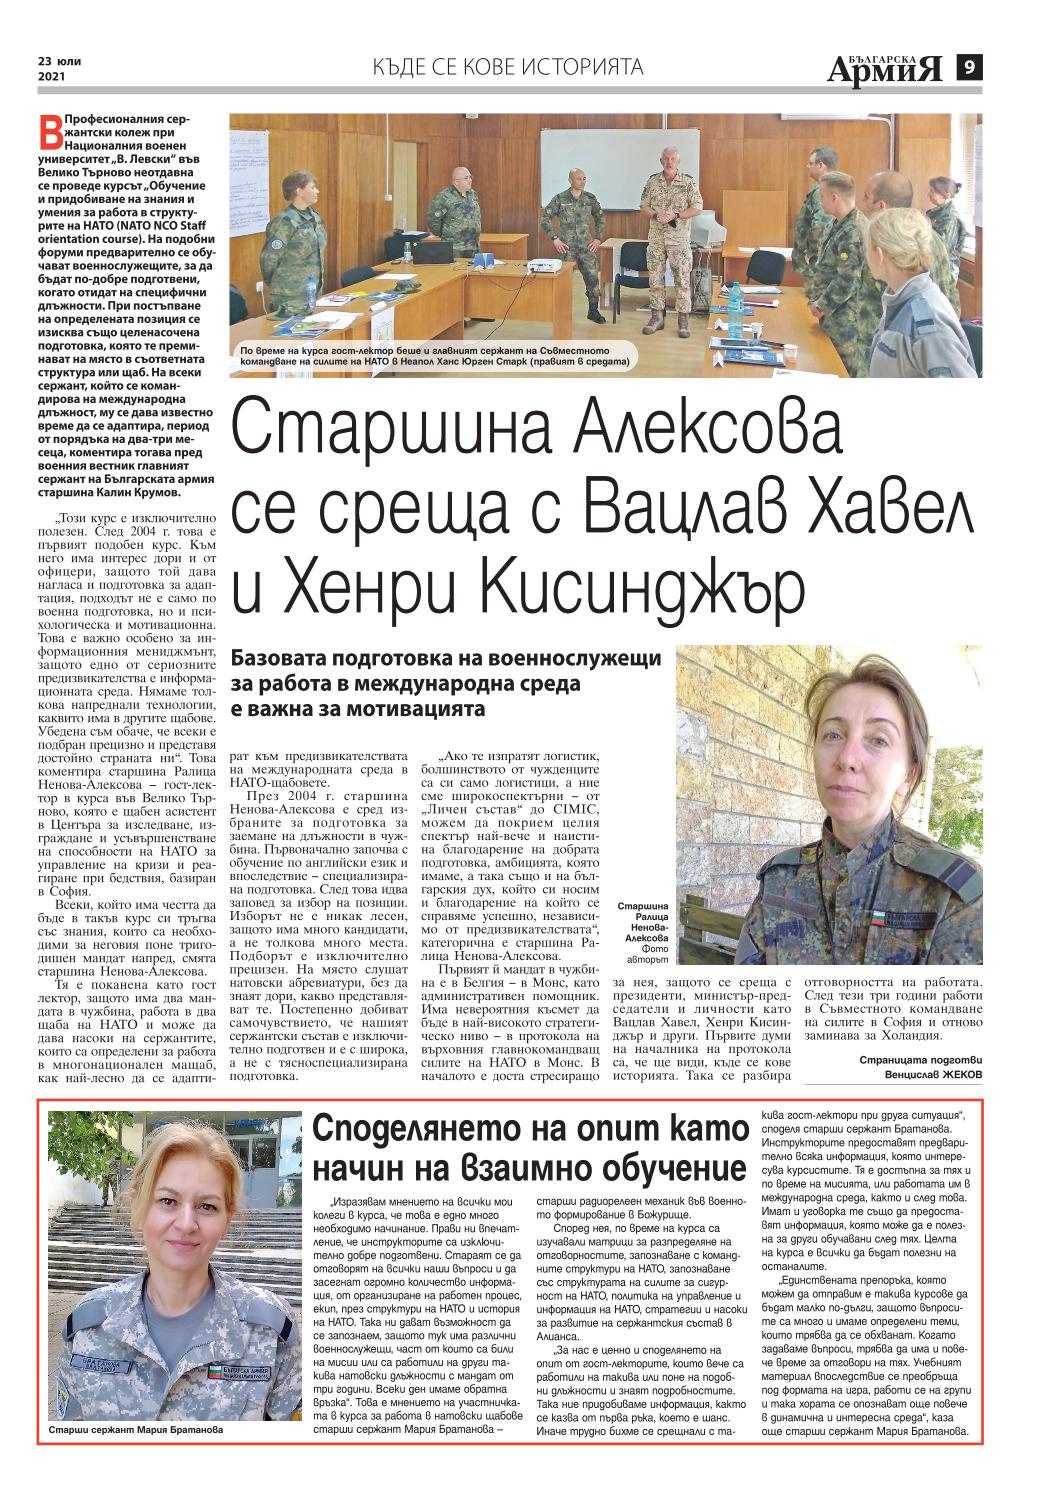 https://armymedia.bg/wp-content/uploads/2021/07/09.page1_-3.jpg